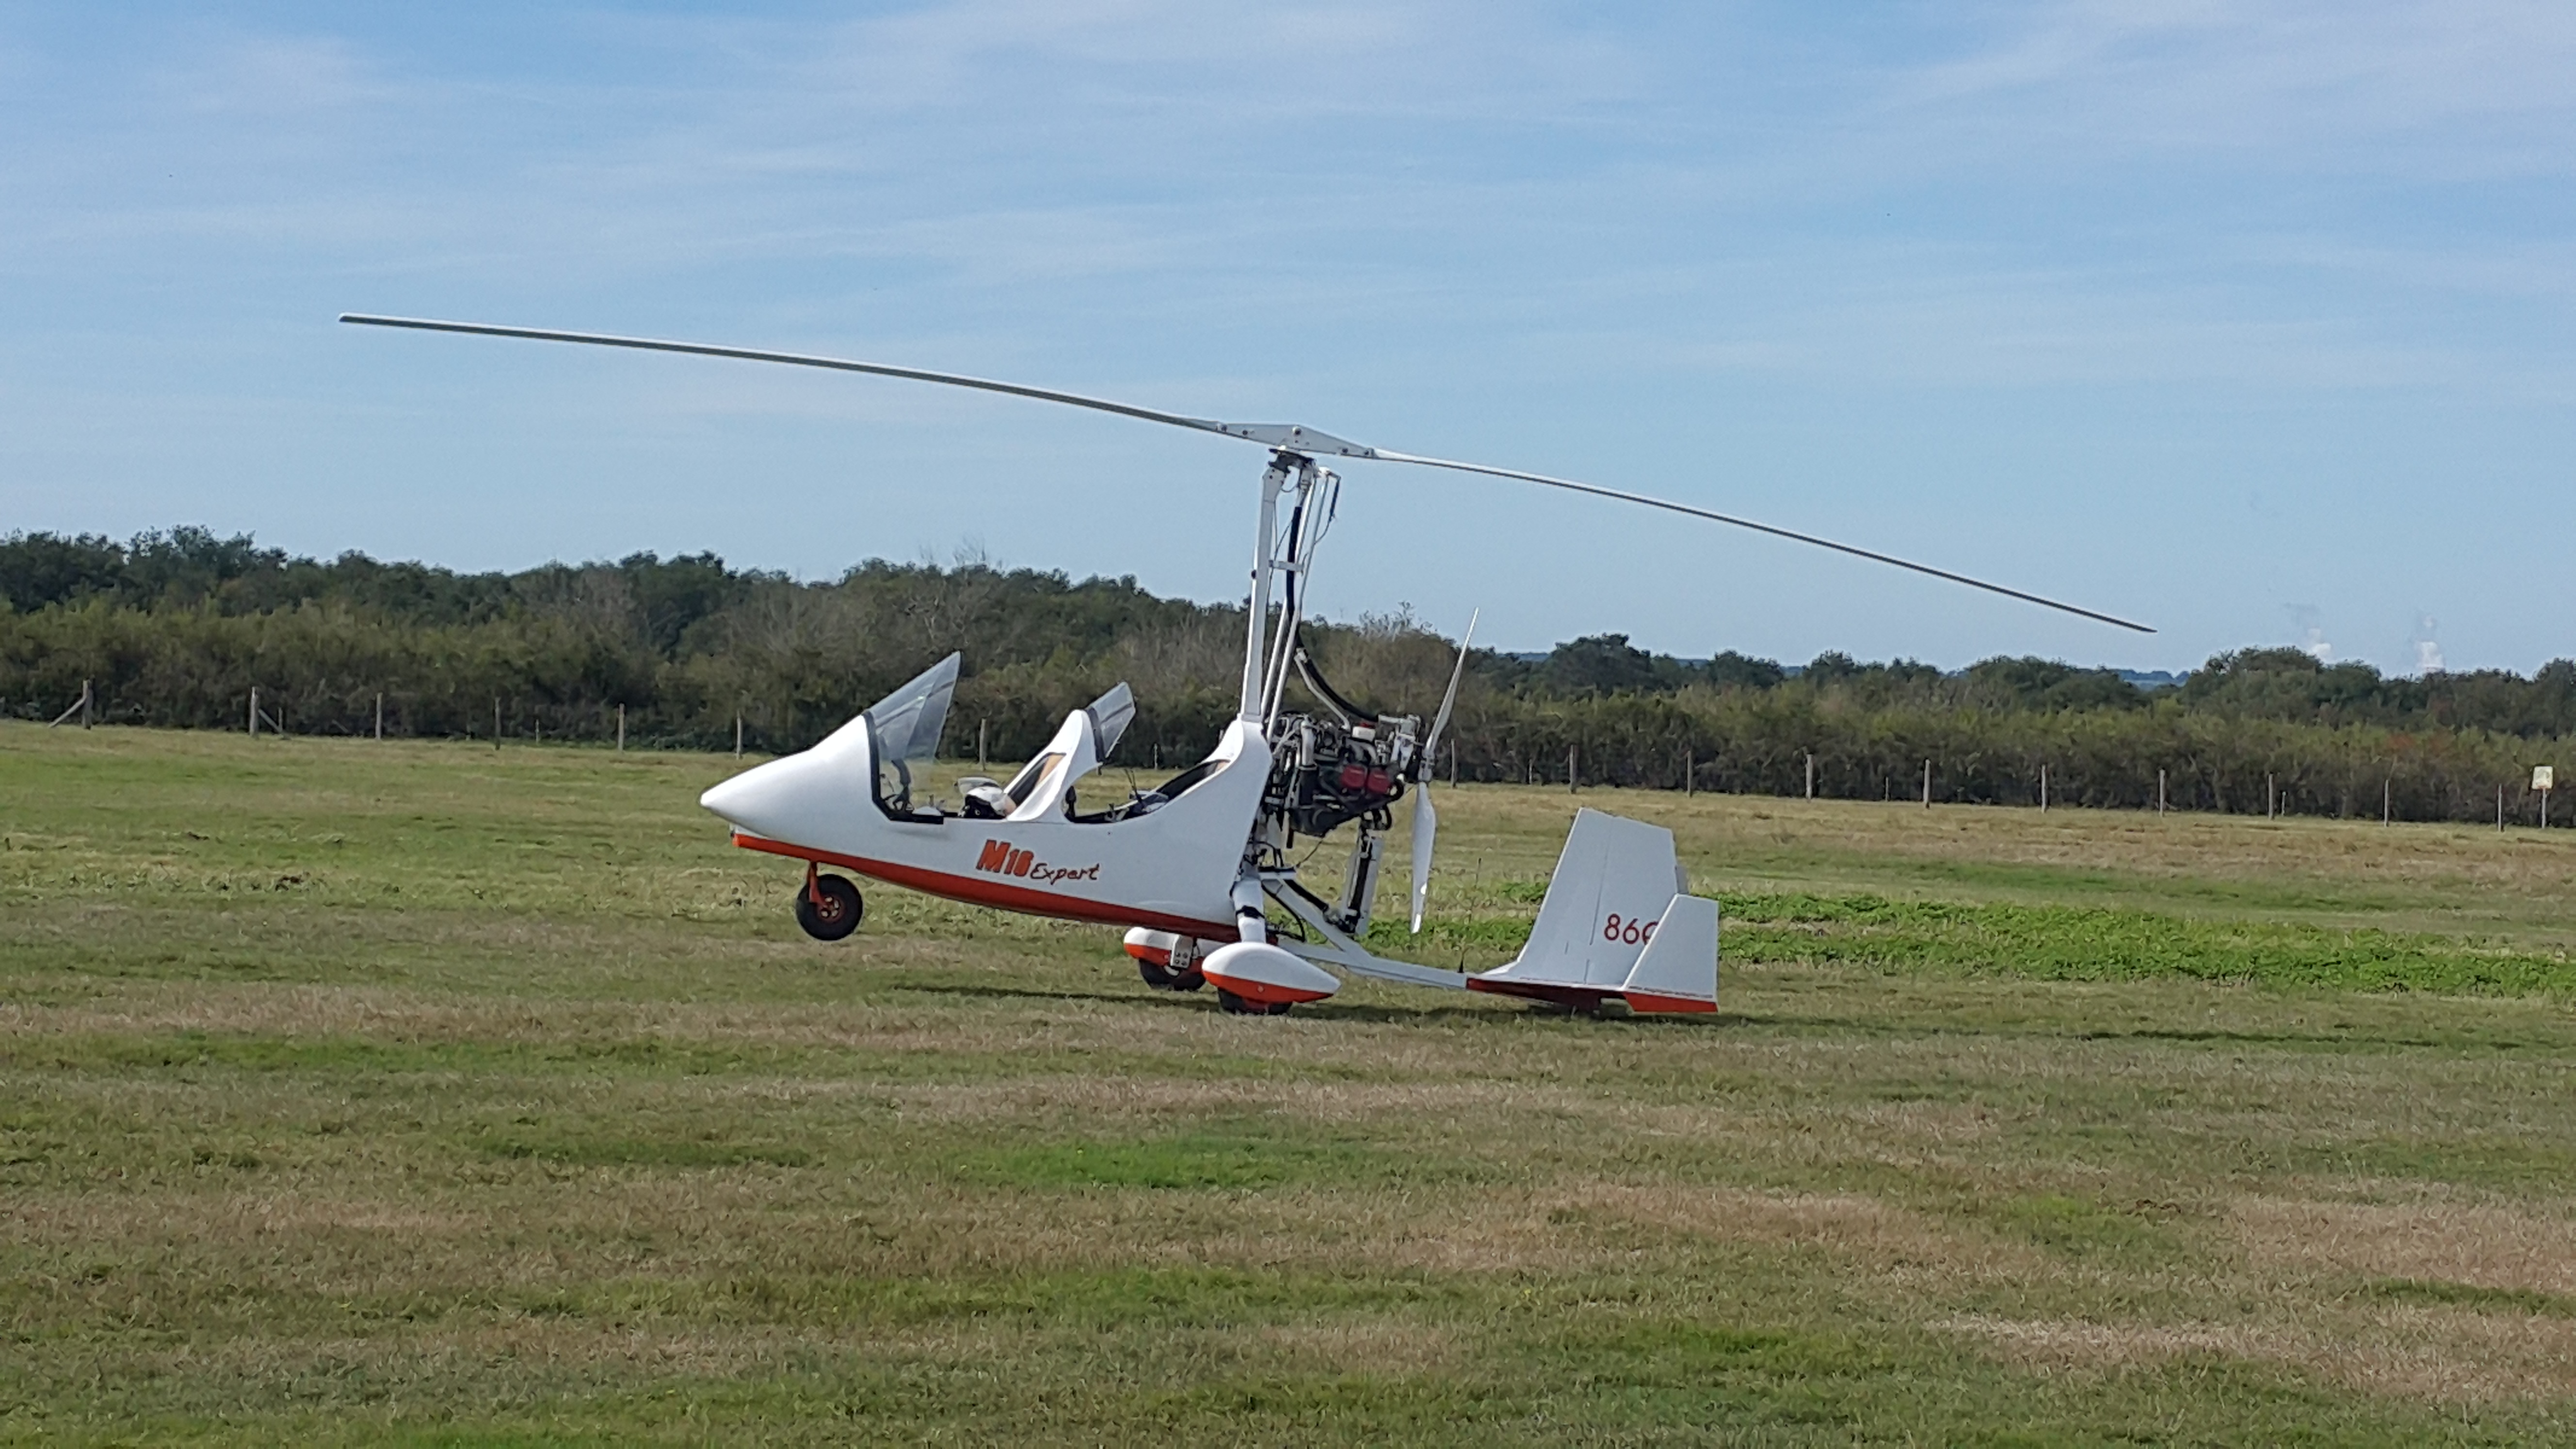 Autogire Gyrocopter tandem